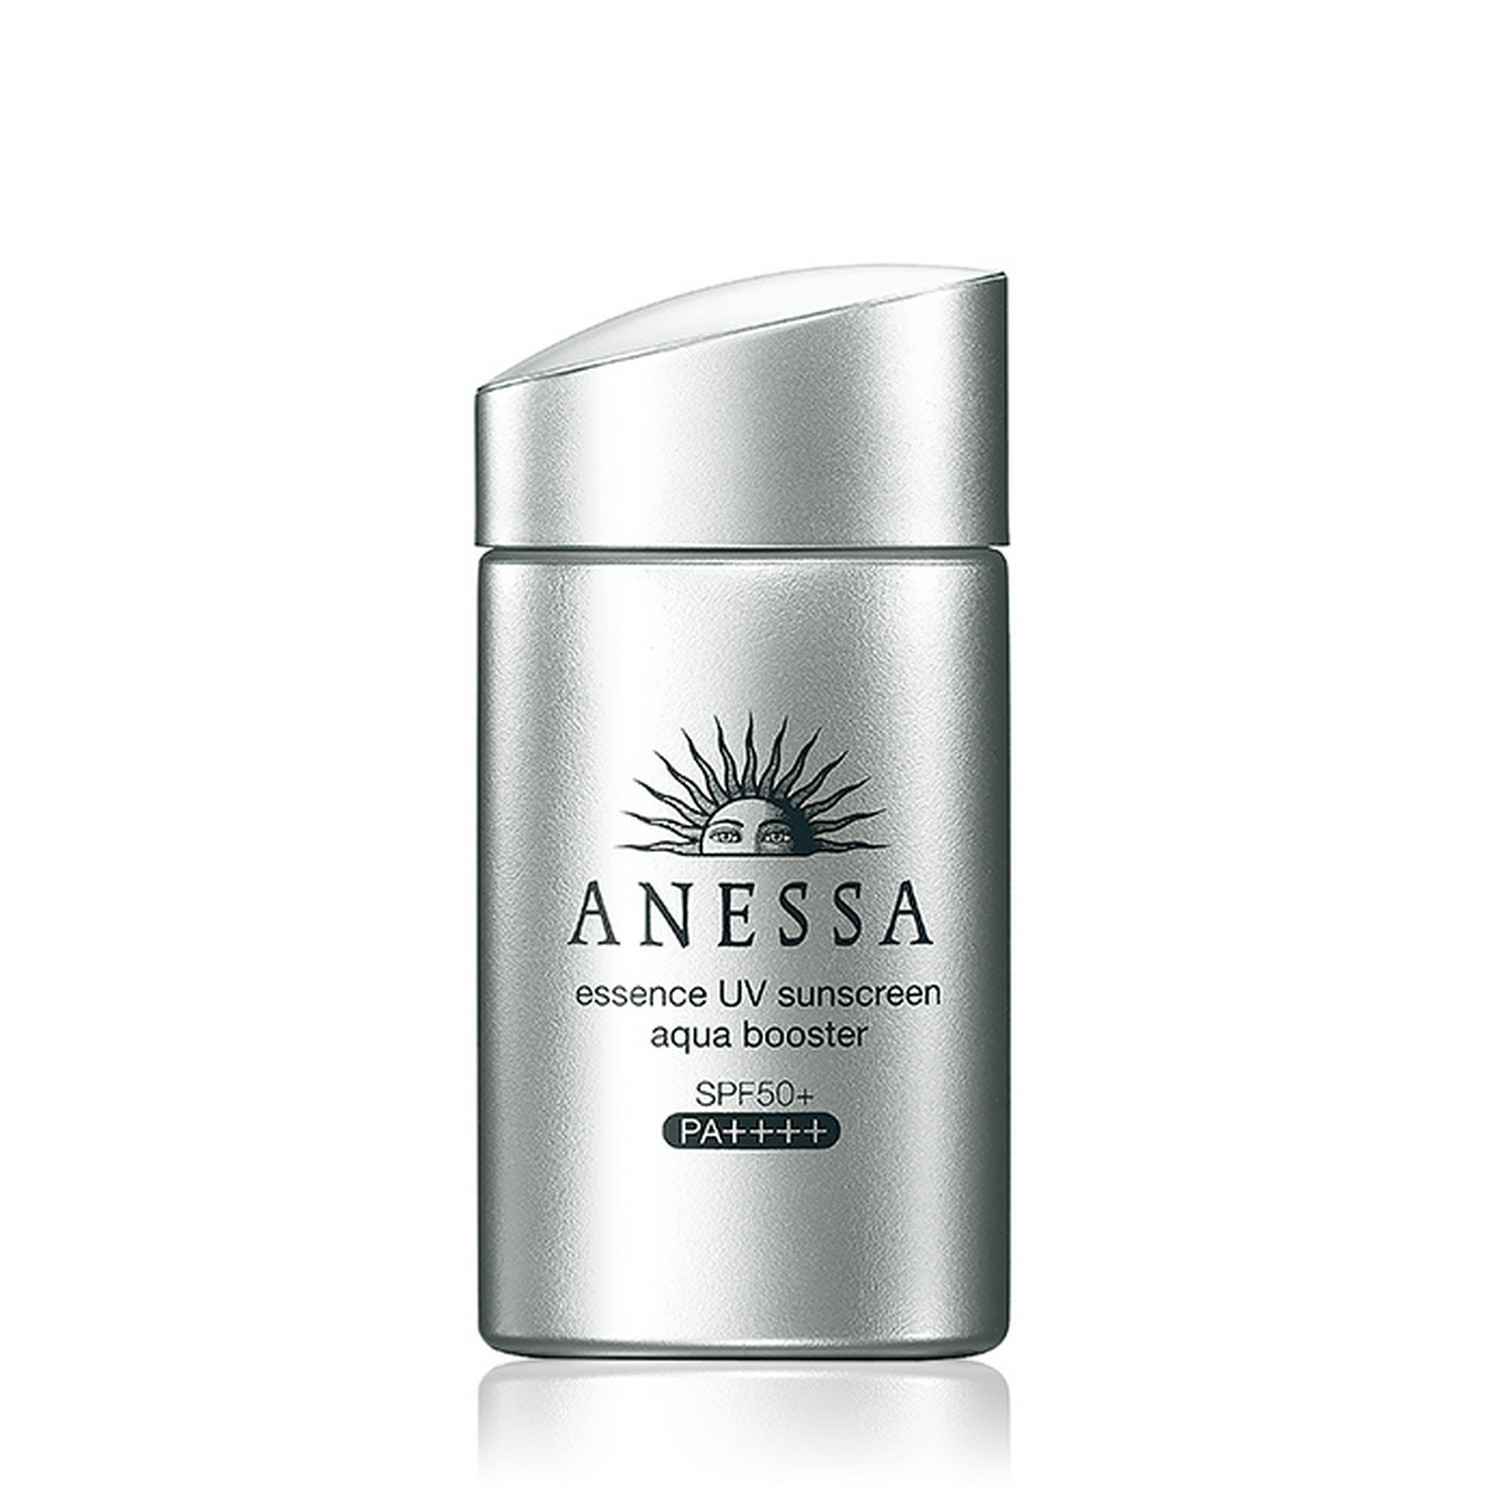 ANESSA ANESSA essence UV sunscreen aqua booster SPF50+ PA++++ (60 ml)